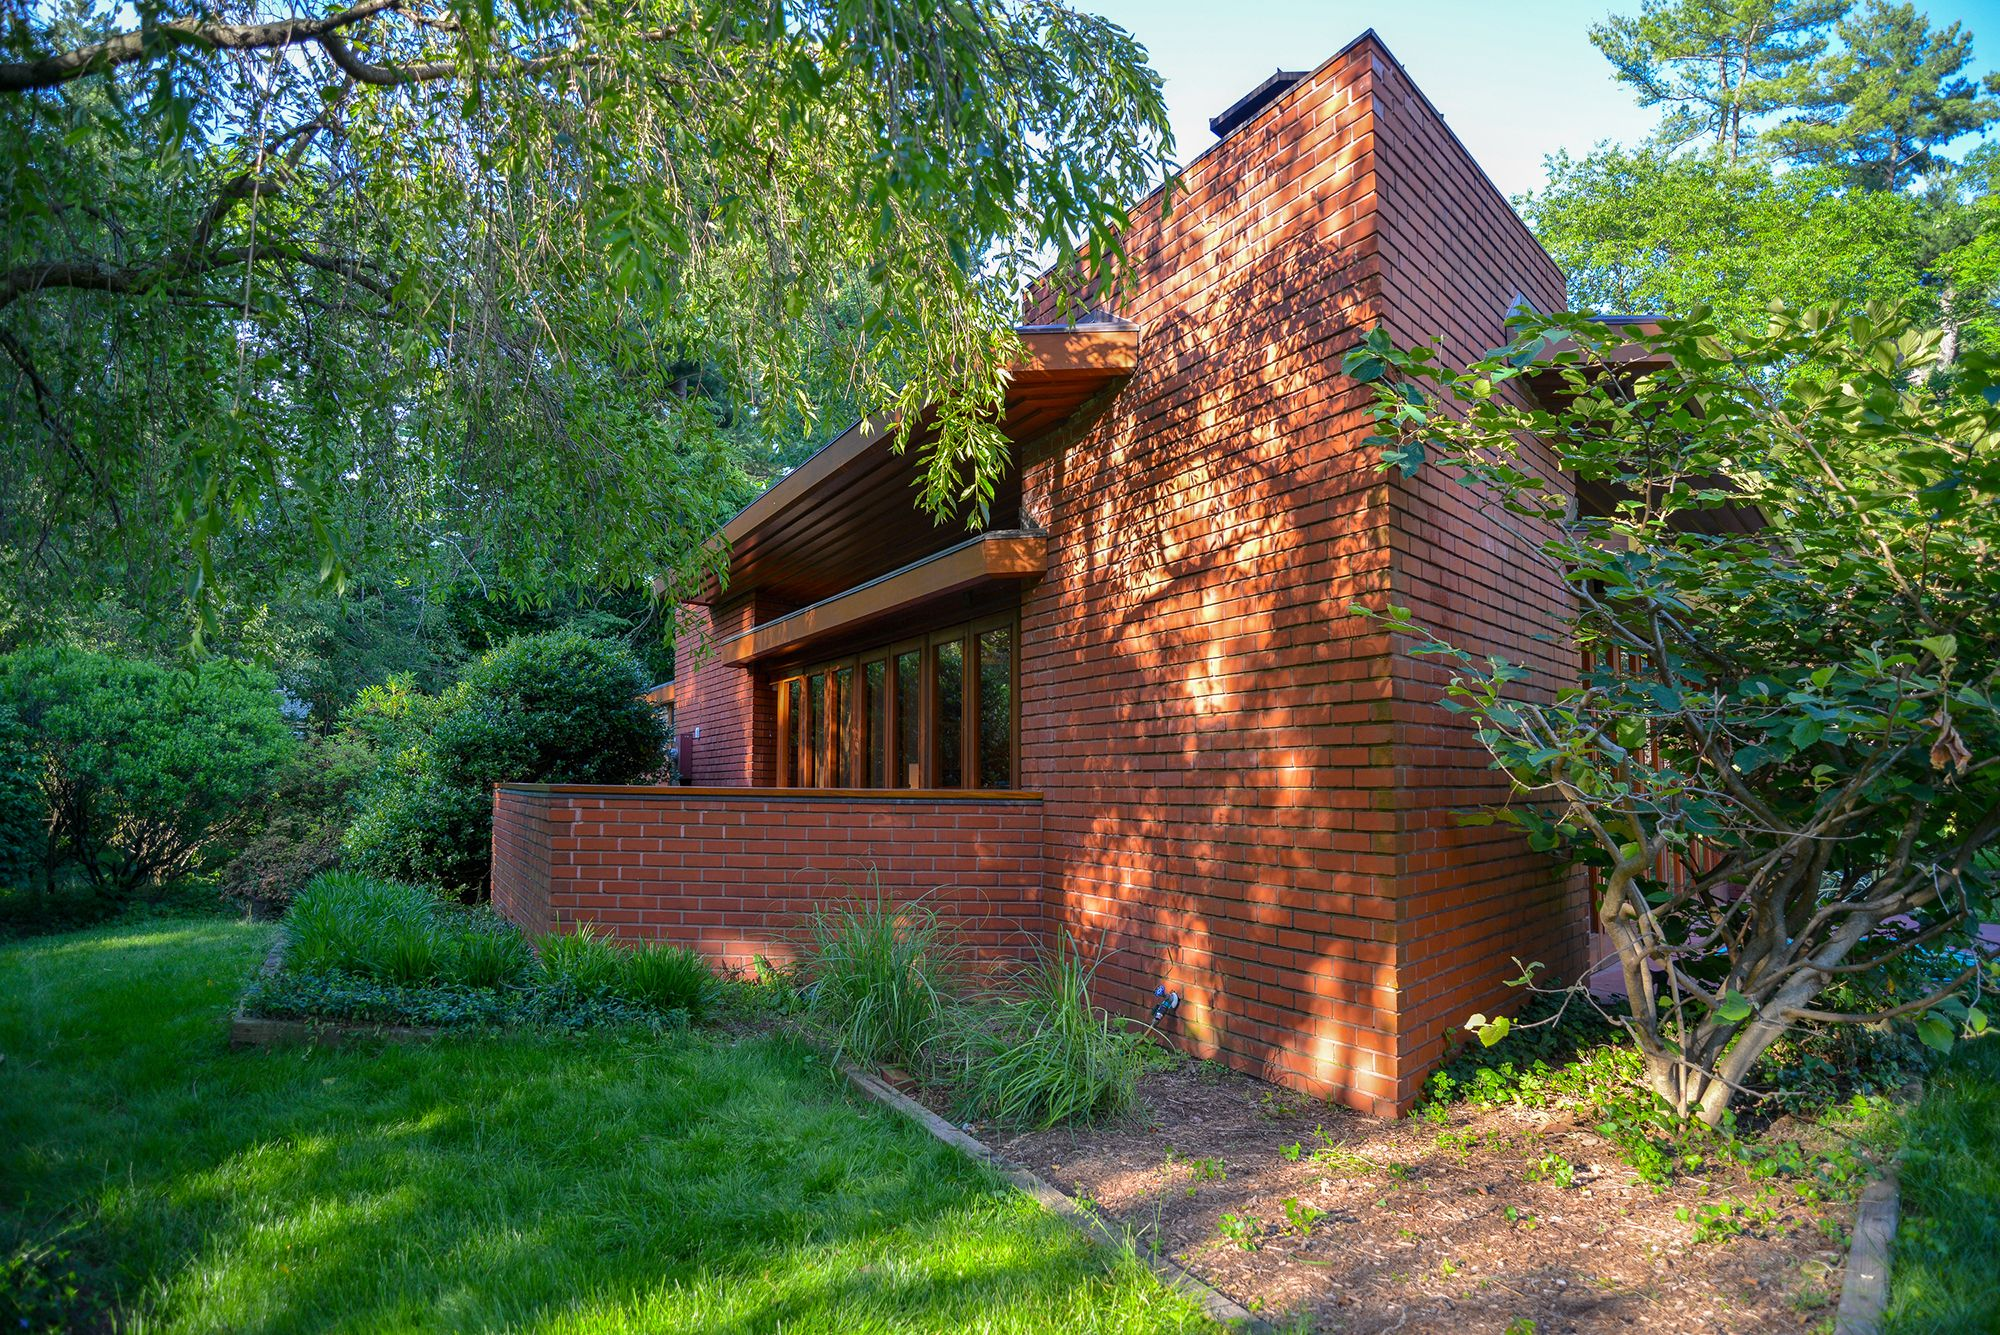 This Stunning Midcentury Frank Lloyd Wright Home is on Sale for $1.2 Million